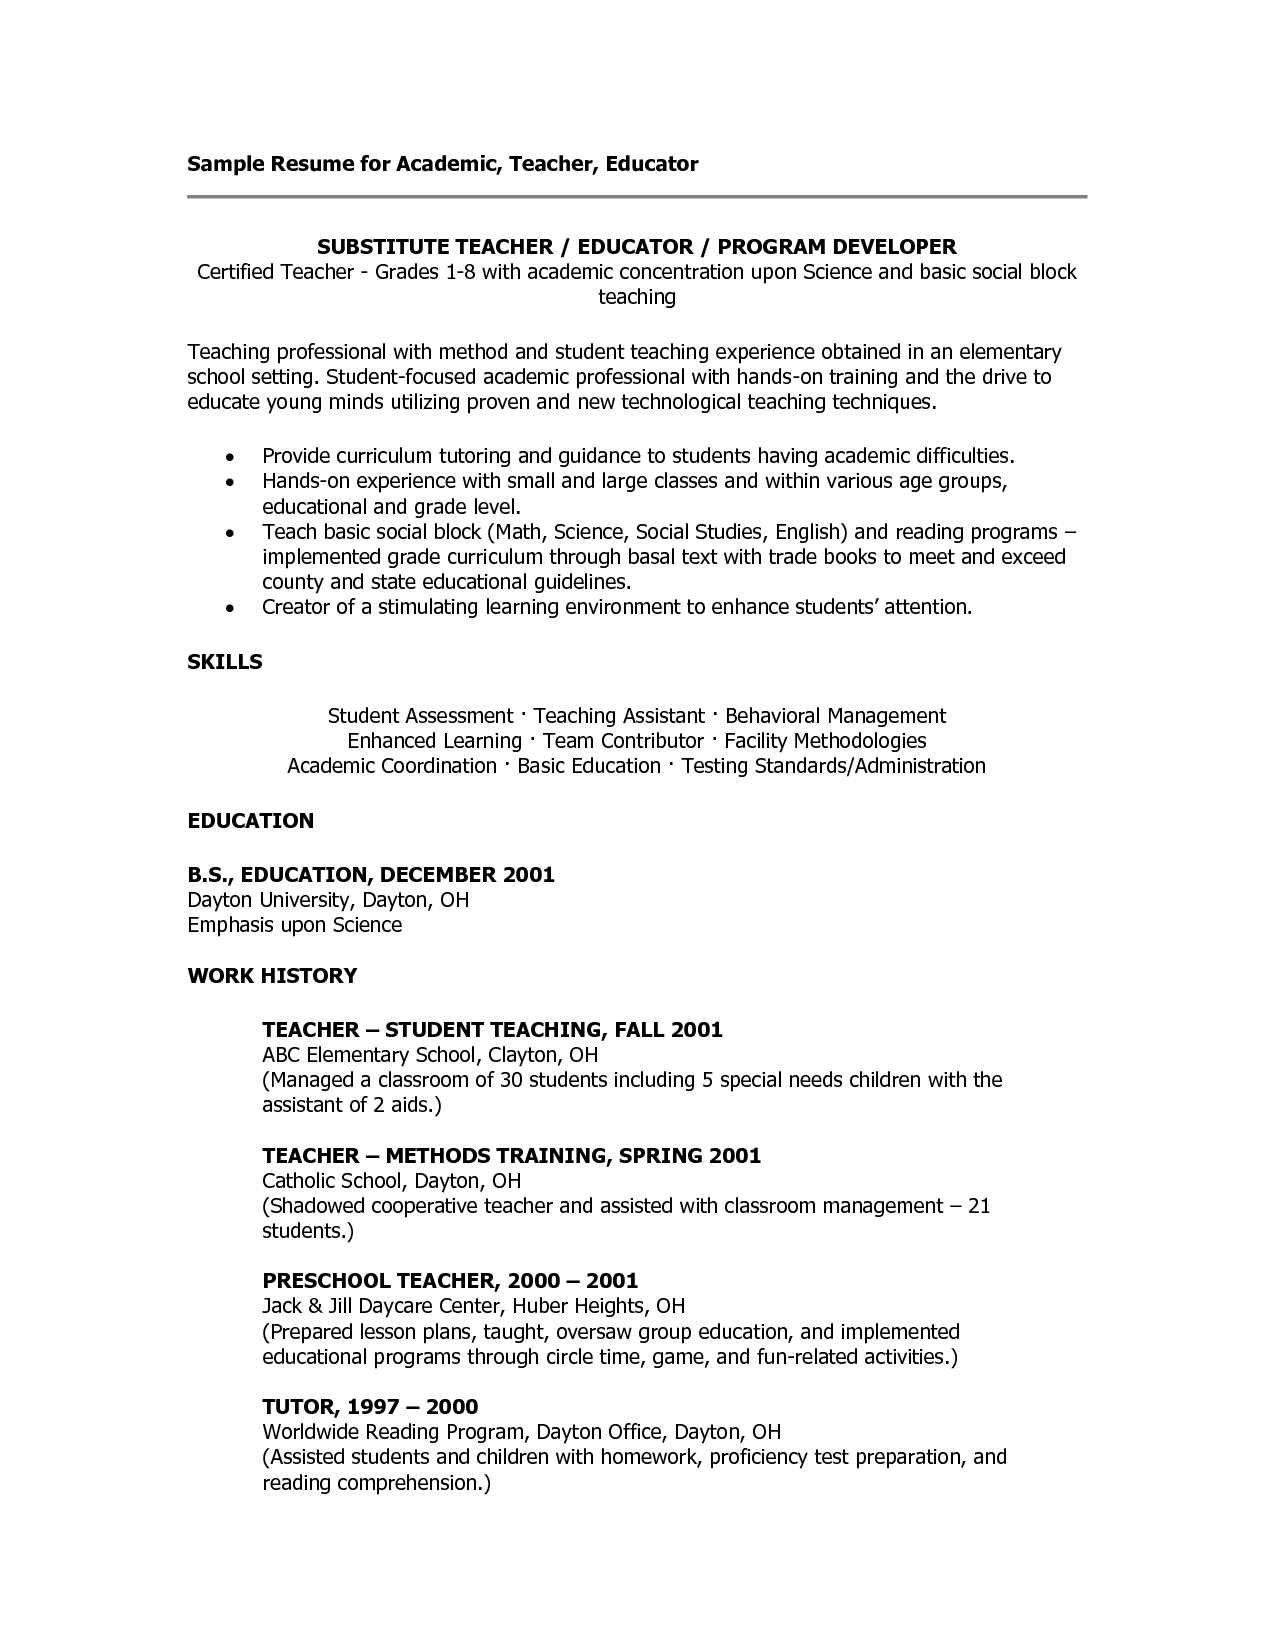 sample teacher resumes | Substitute Teacher Resume | FCS ...